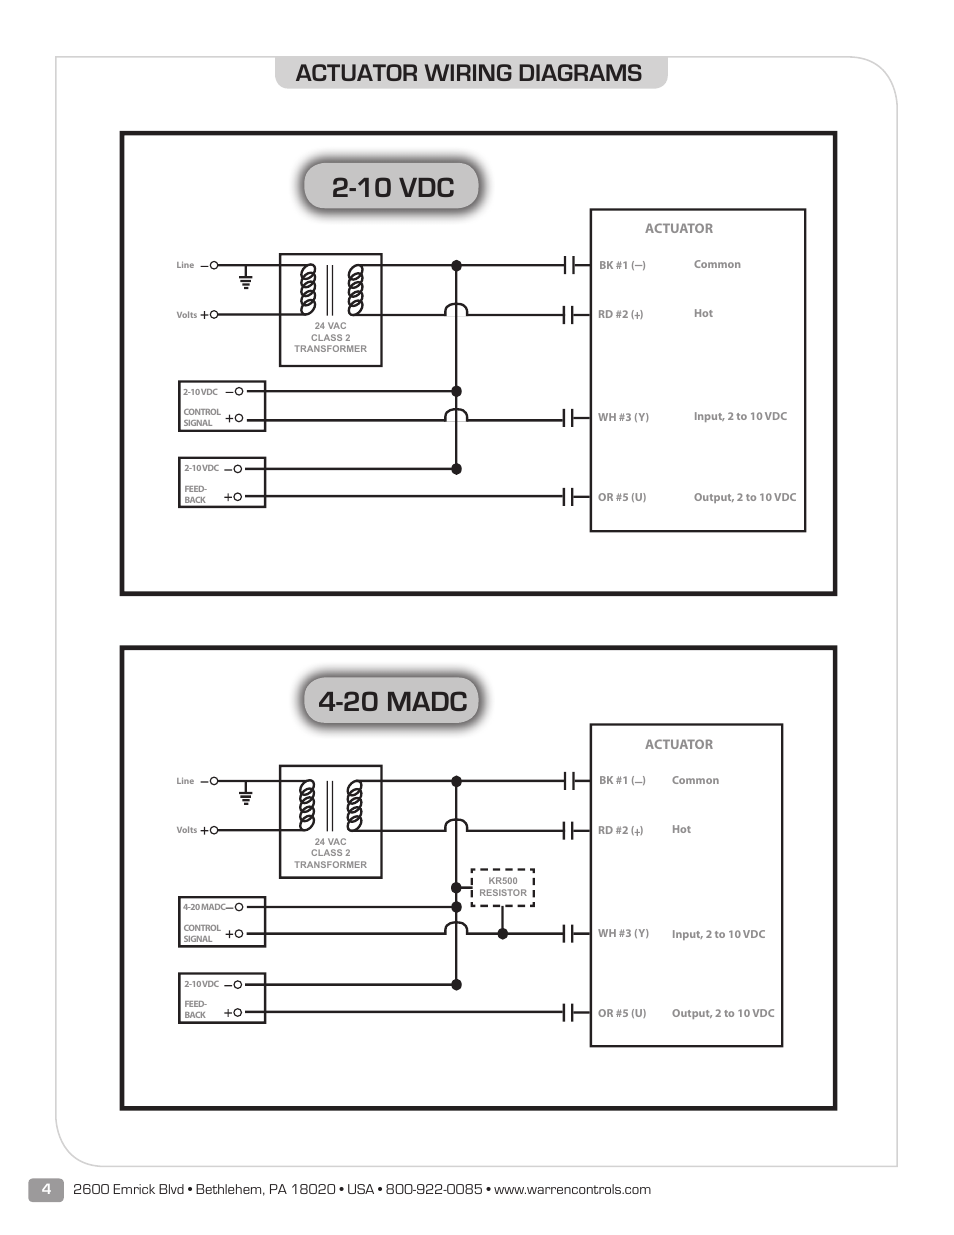 10 Vdc  20 Madc  Actuator Wiring Diagrams